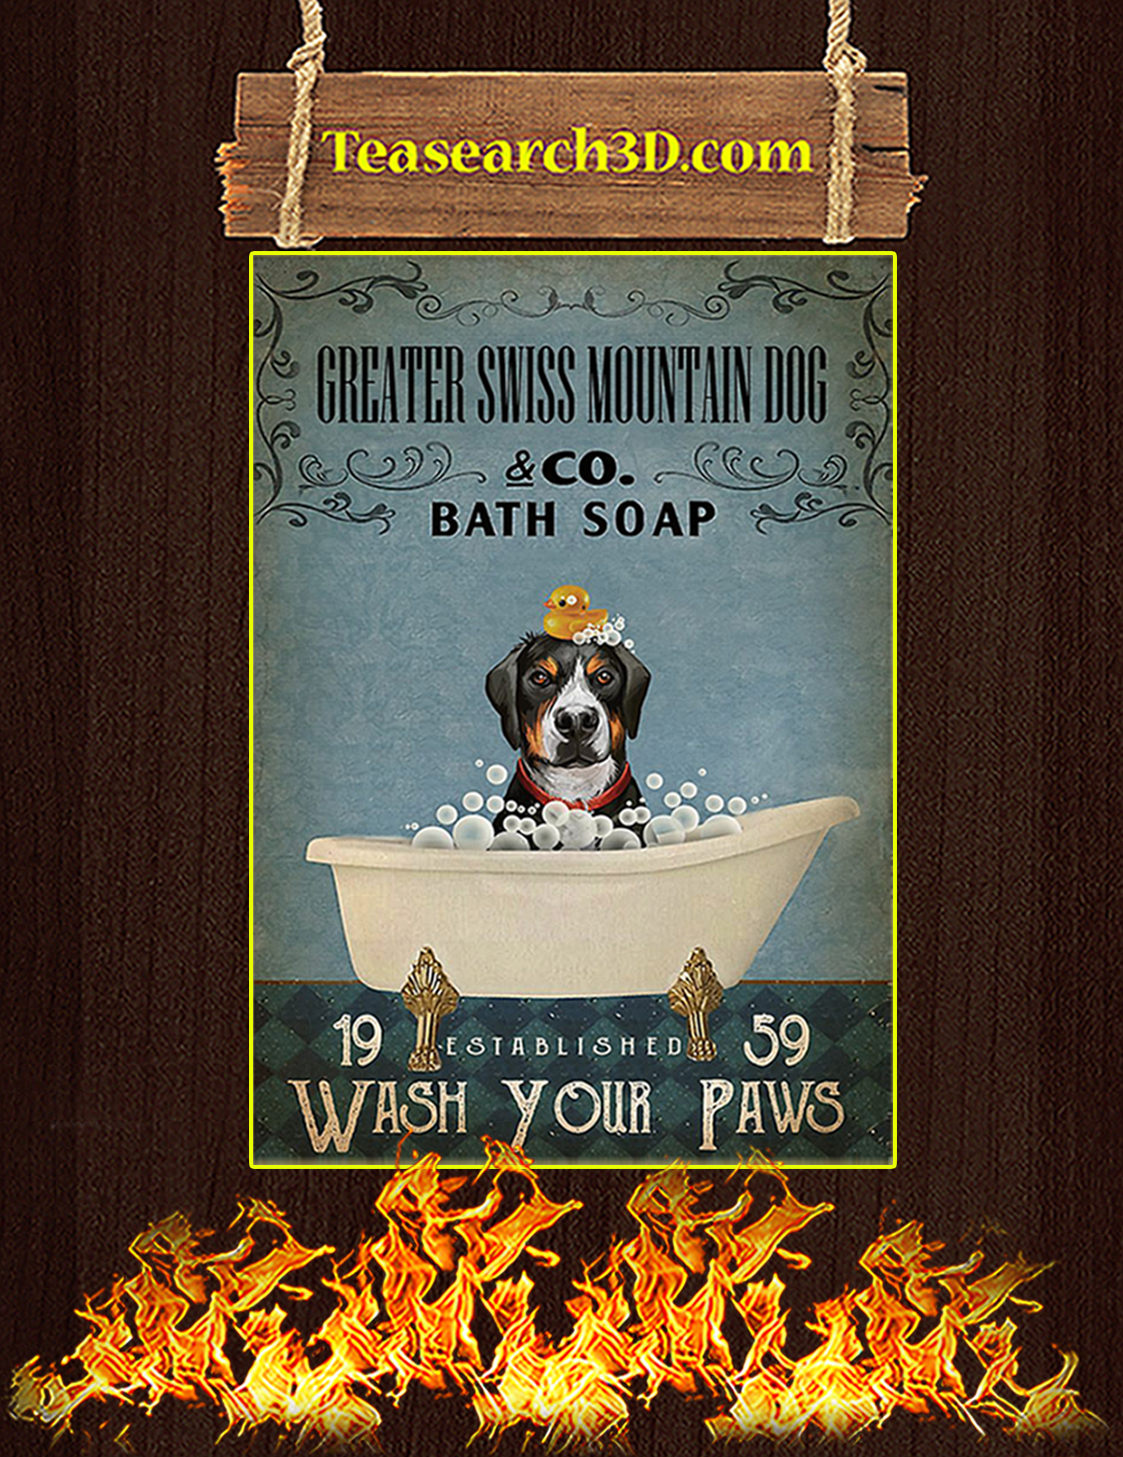 Bath soap company greater swiss mountain dog poster A3